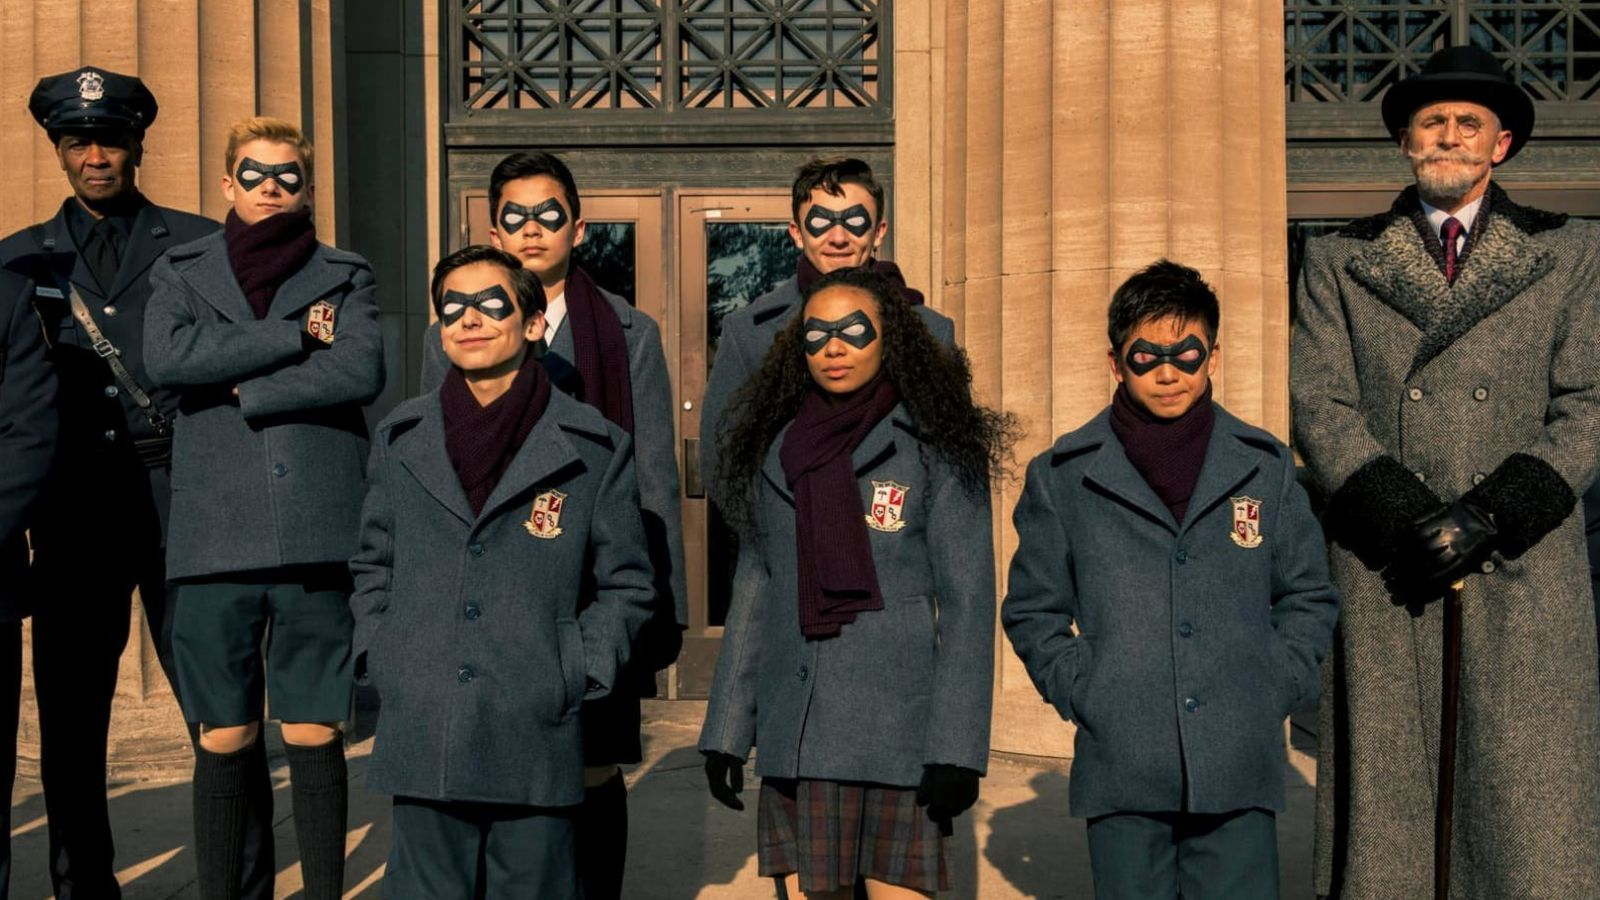 'Umbrella Academy': un drama familiar de gente con superpoderes